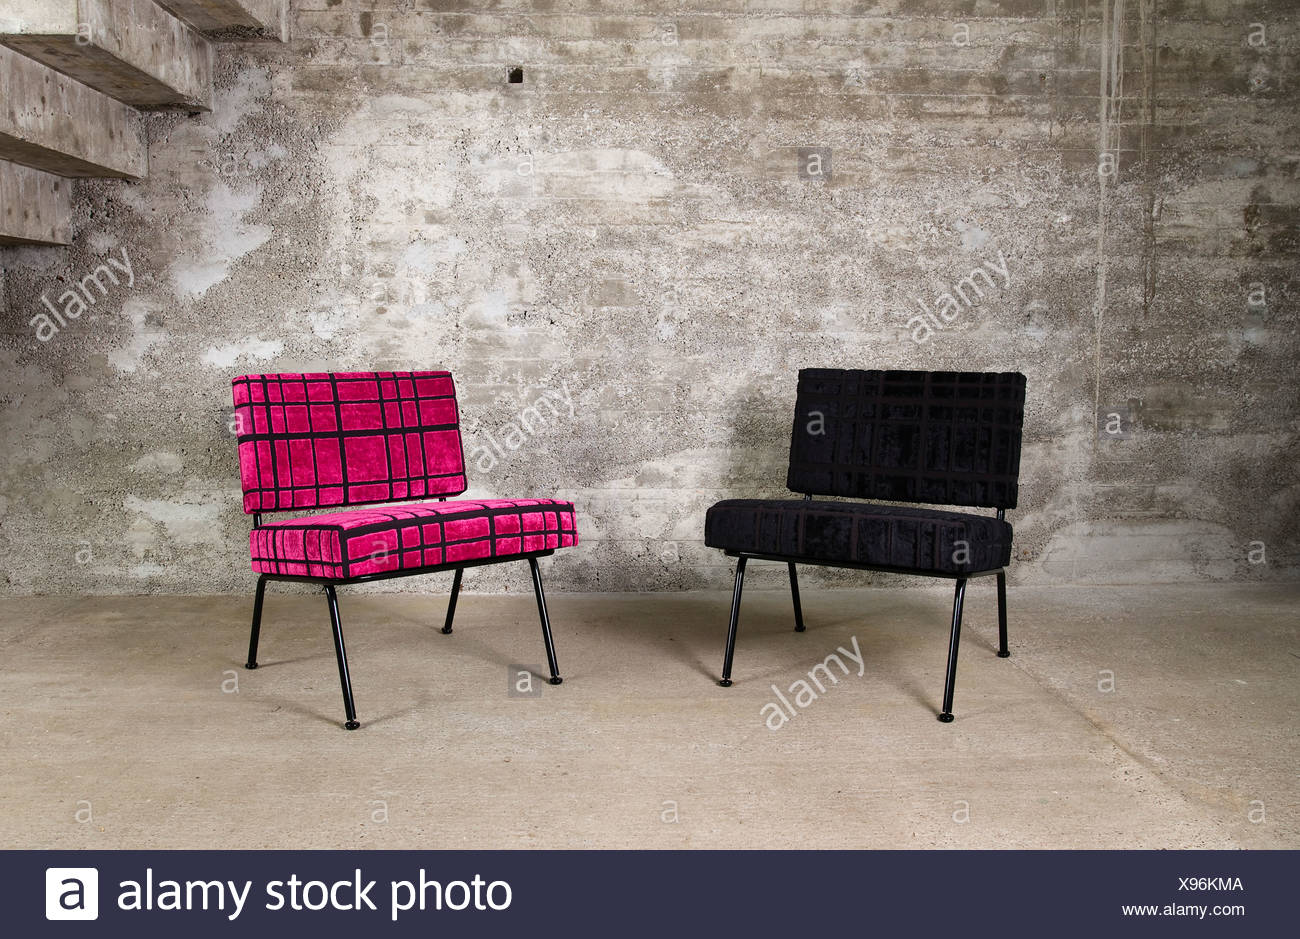 Two designer rocking chairs in an empty room in front of a concrete wall - Stock Image